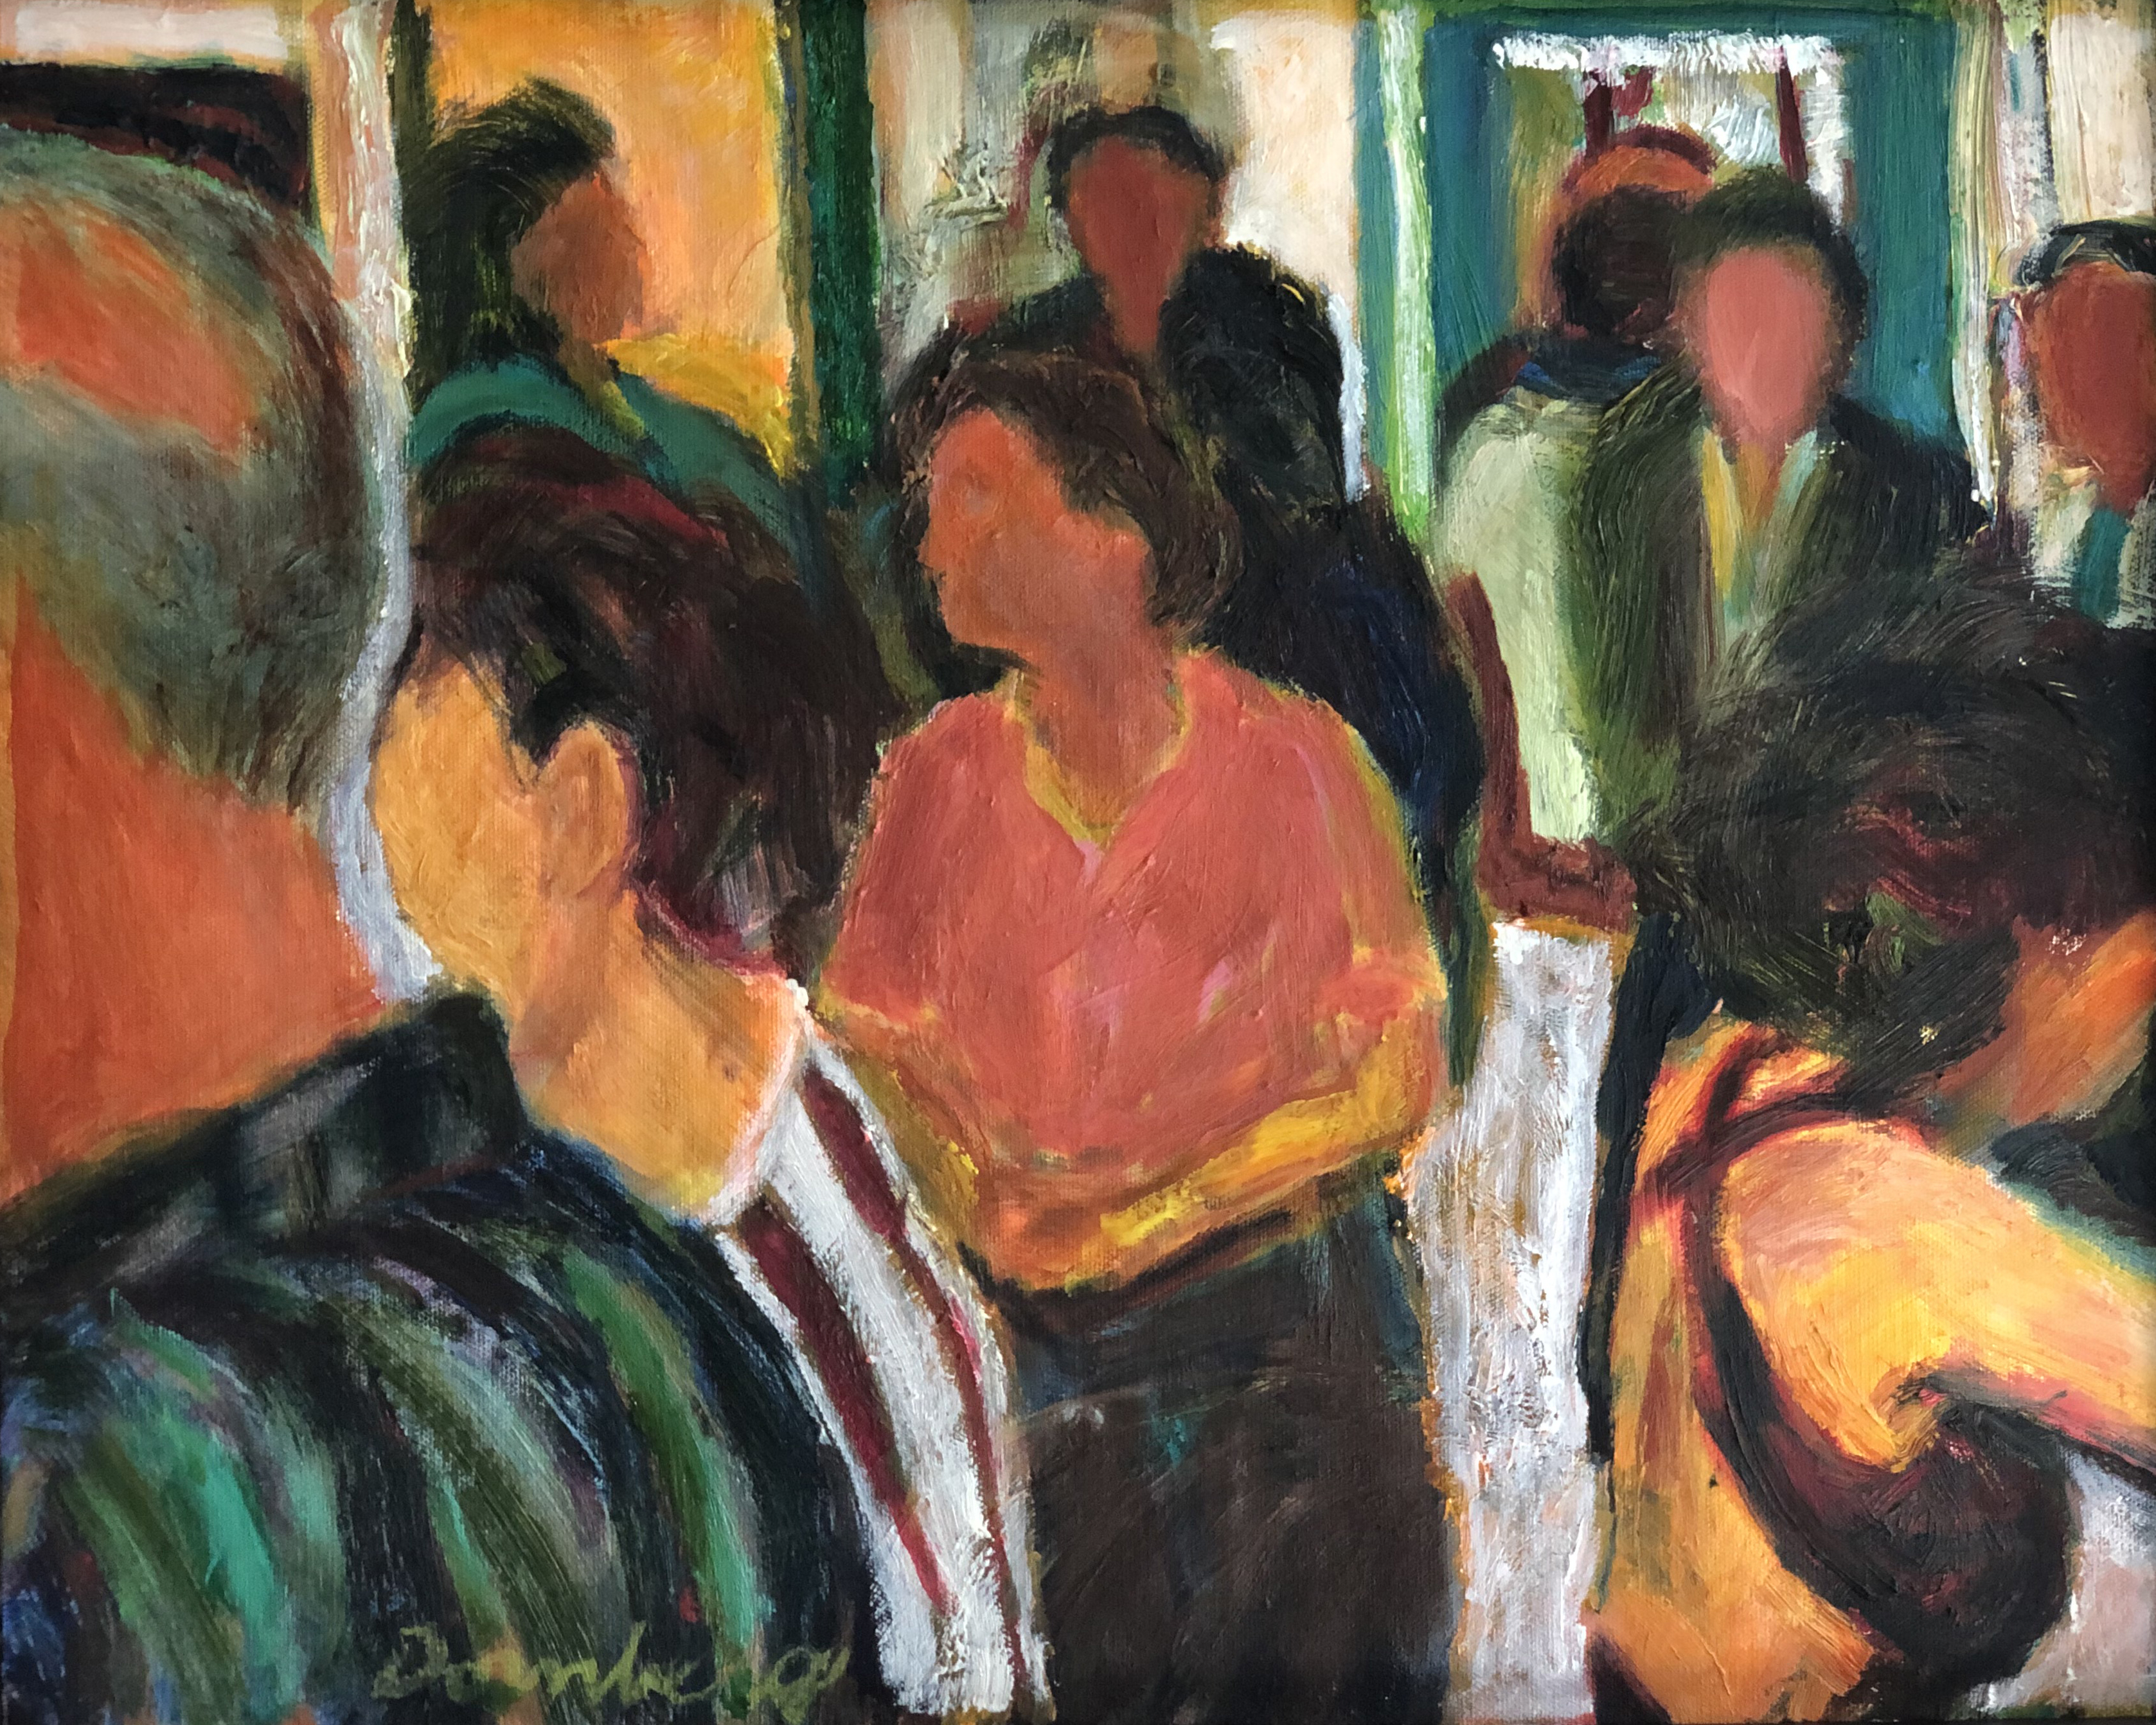 Bob Dornberg: 'gallery crowd', 2019 Oil Painting, Abstract Figurative. People admiring the artwork...